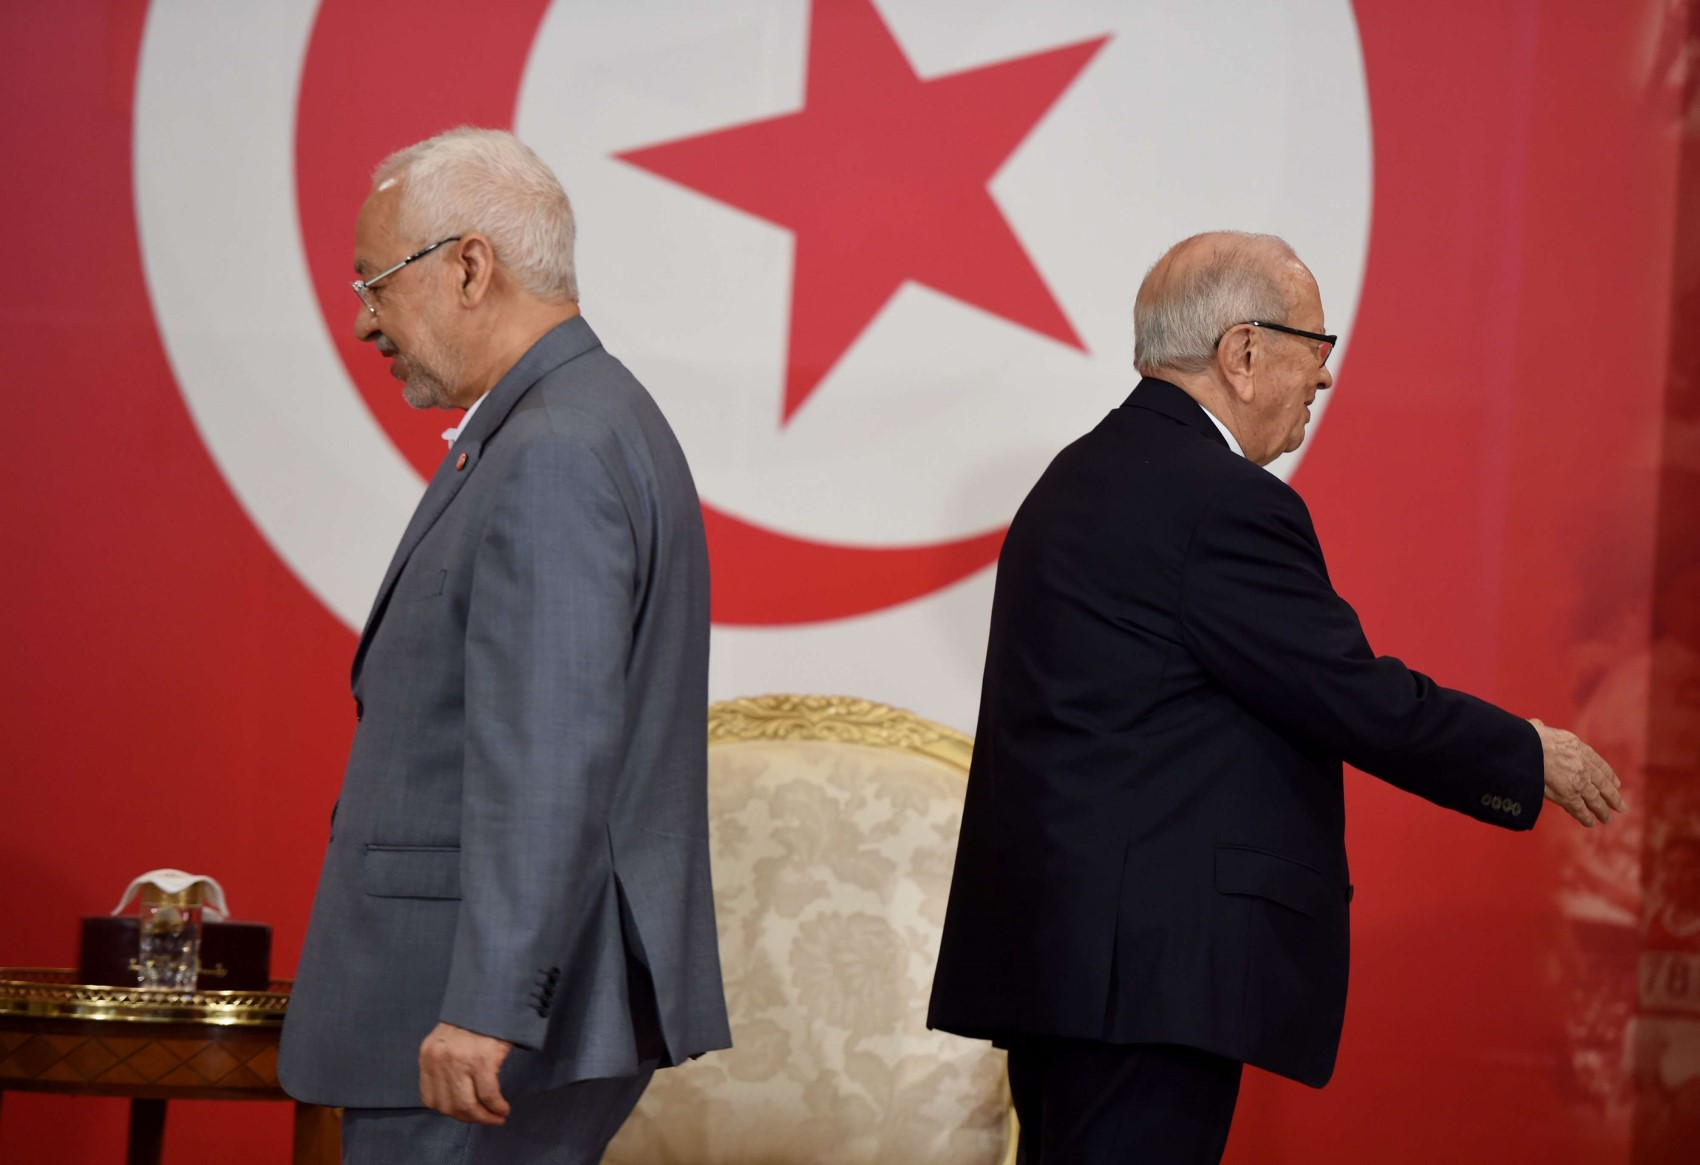 A picture dated on July 13, 2016 shows Tunisian President Beji Caid Essebsi (R) walking the opposite direction from the leader of the Islamist Ennahdha party, Rached Ghannouchi. (AFP)